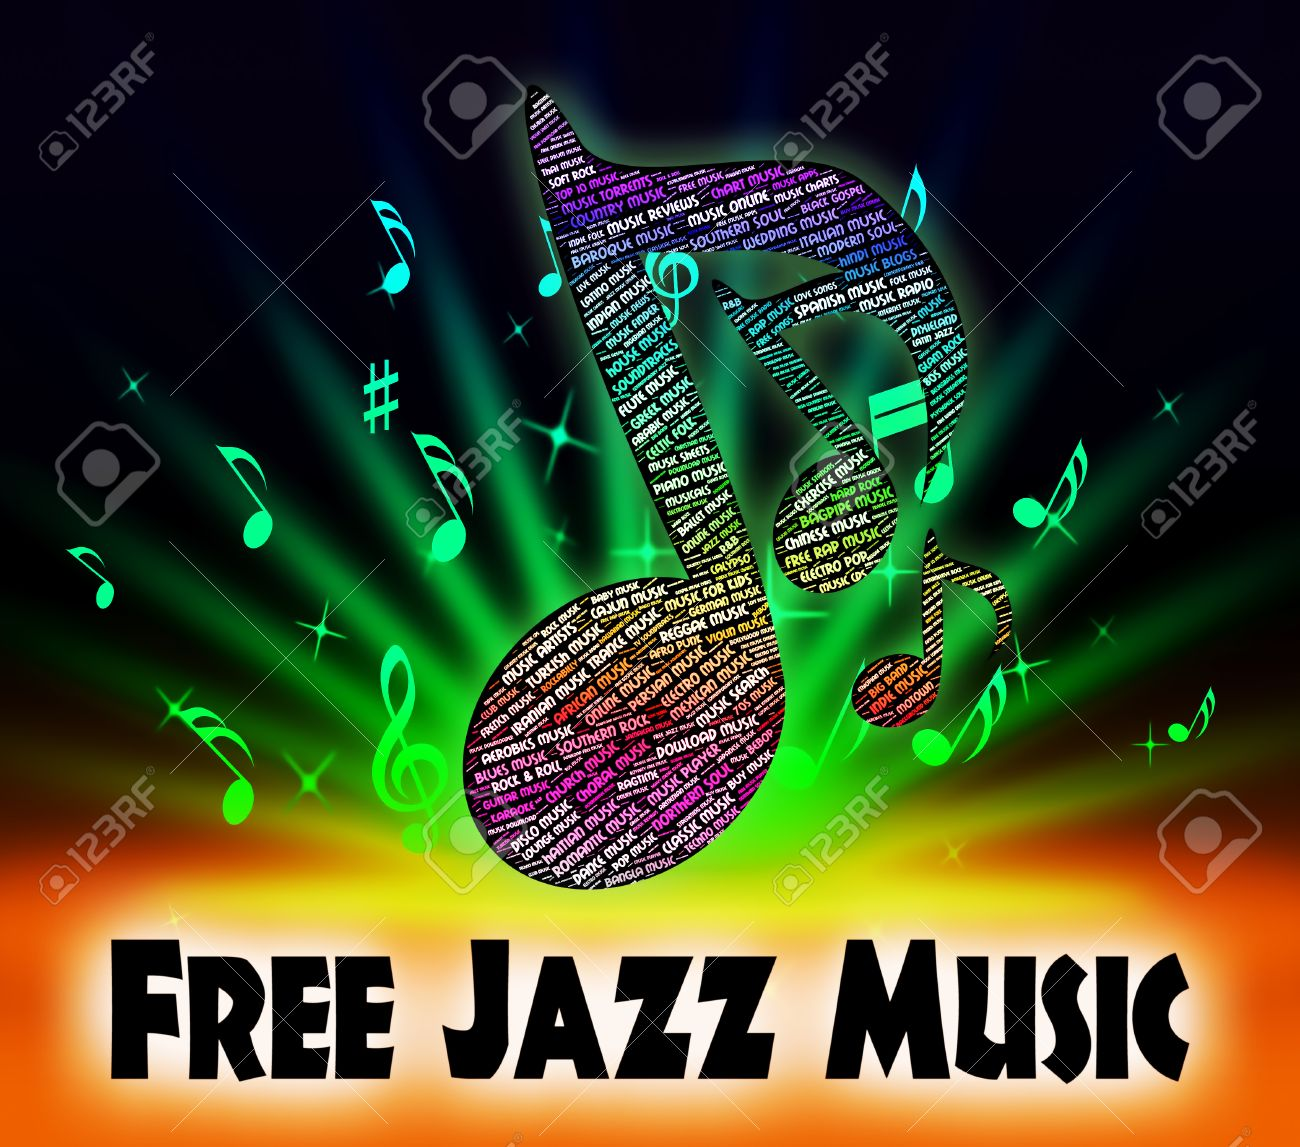 Free Jazz Music Meaning Sound Tracks And Melodies